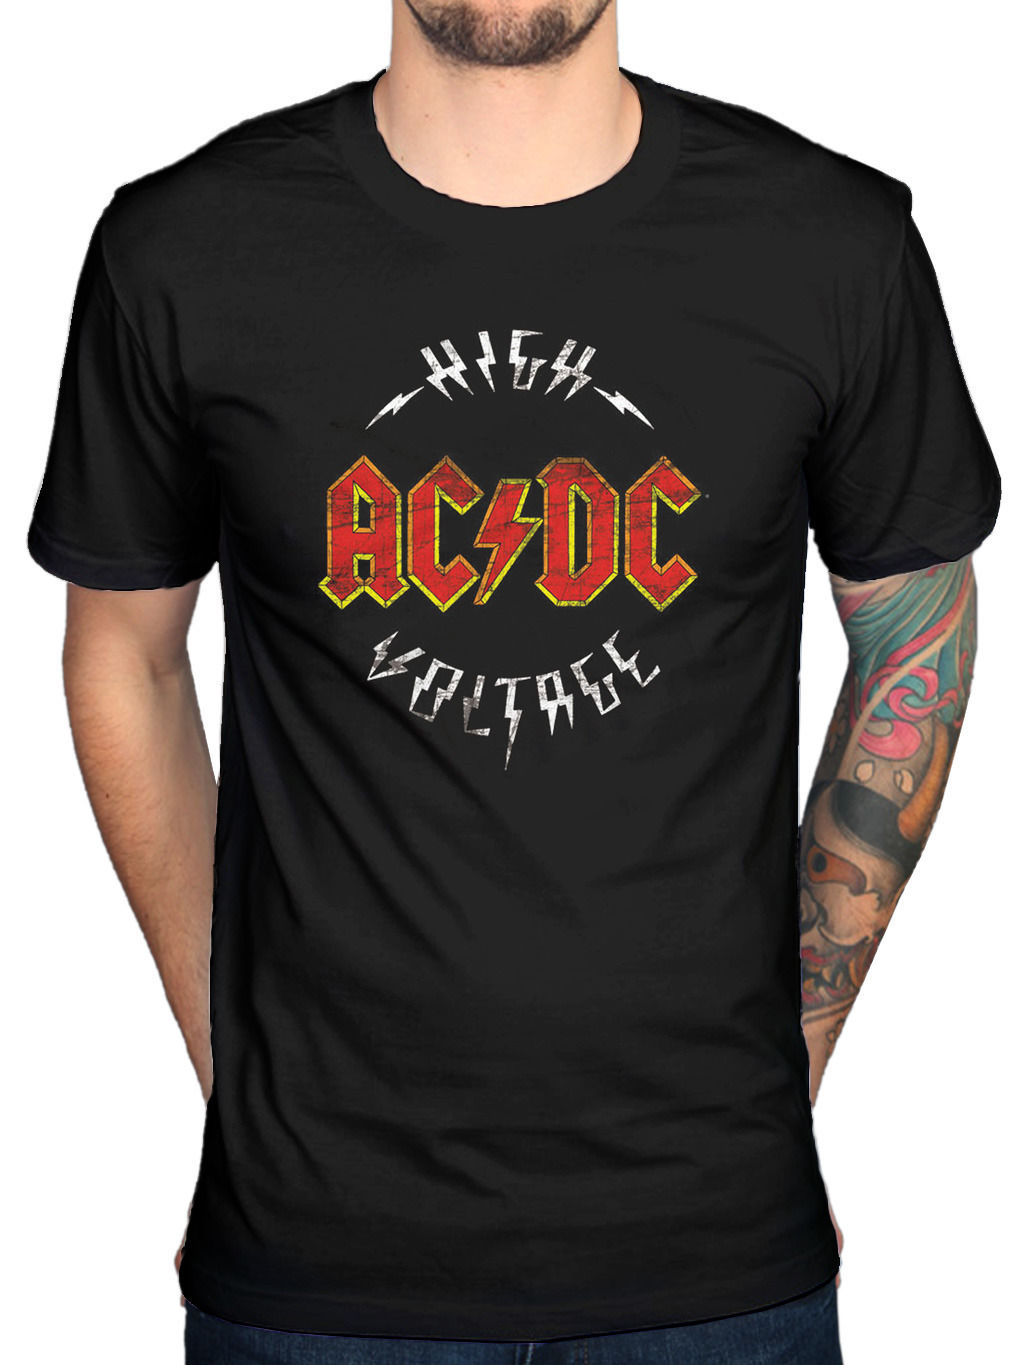 Tops Cool T Shirt Official ACDC High Voltage T-Shirt Those About To Rock Back In Black Dirty Deeds